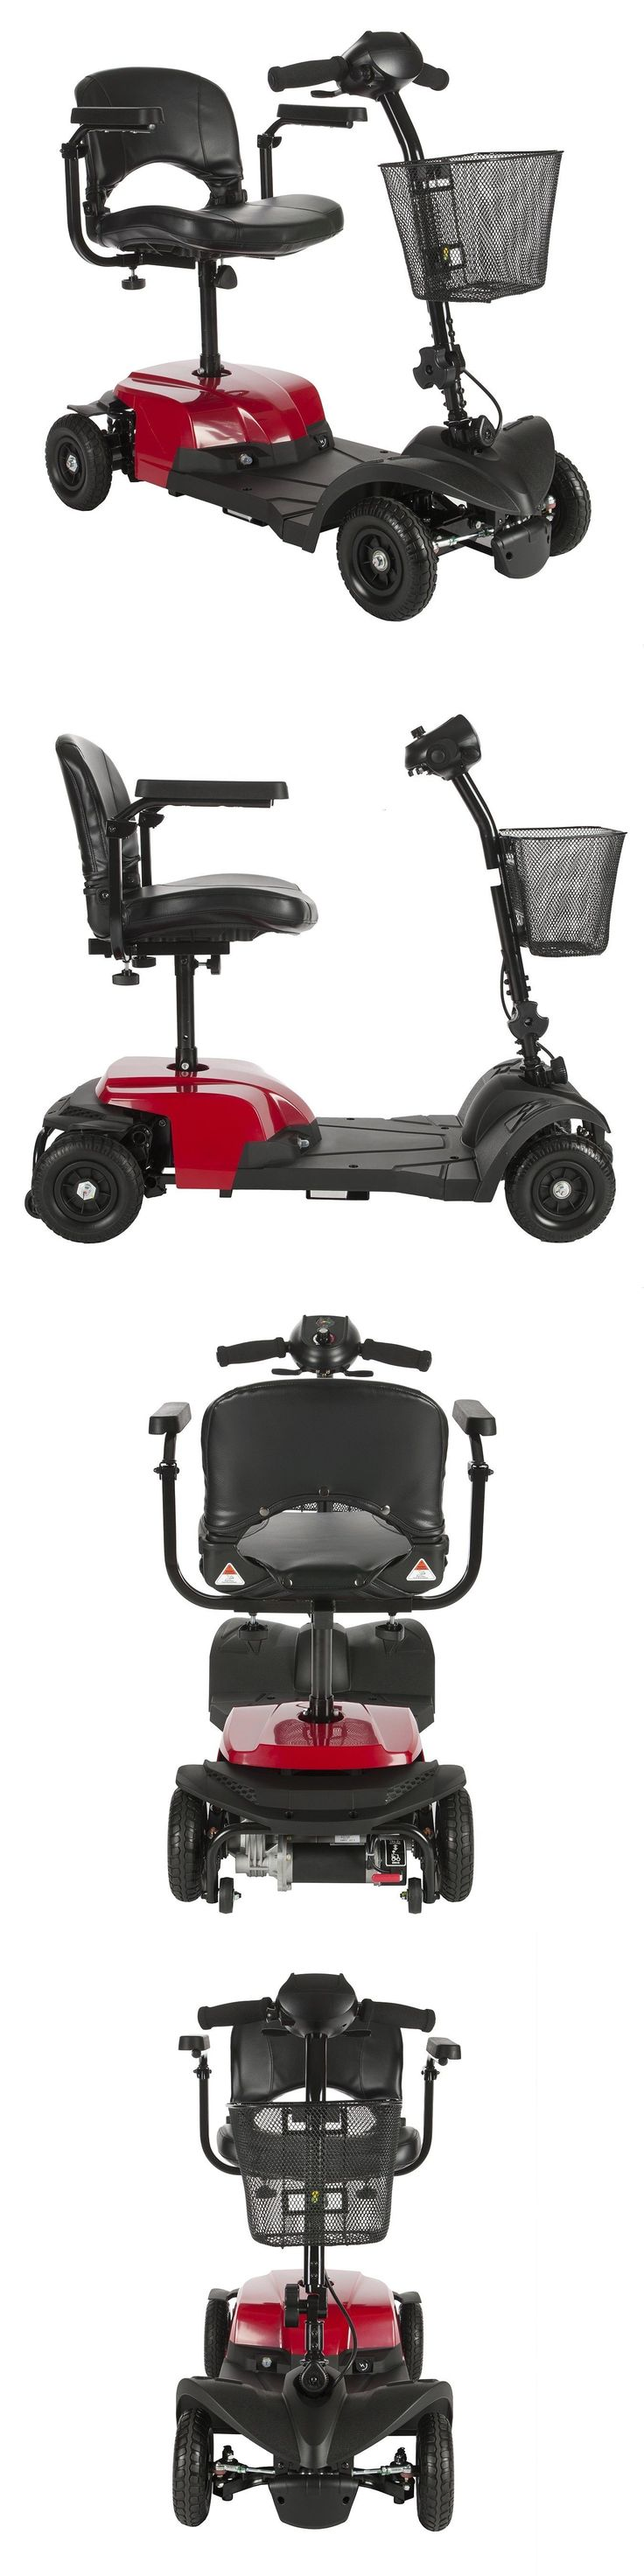 14 best toto scooter x essential images on pinterest medicine mobility scooters new bobcat x4 compact electric transportable power mobility red scooter 4 wheel fandeluxe Images